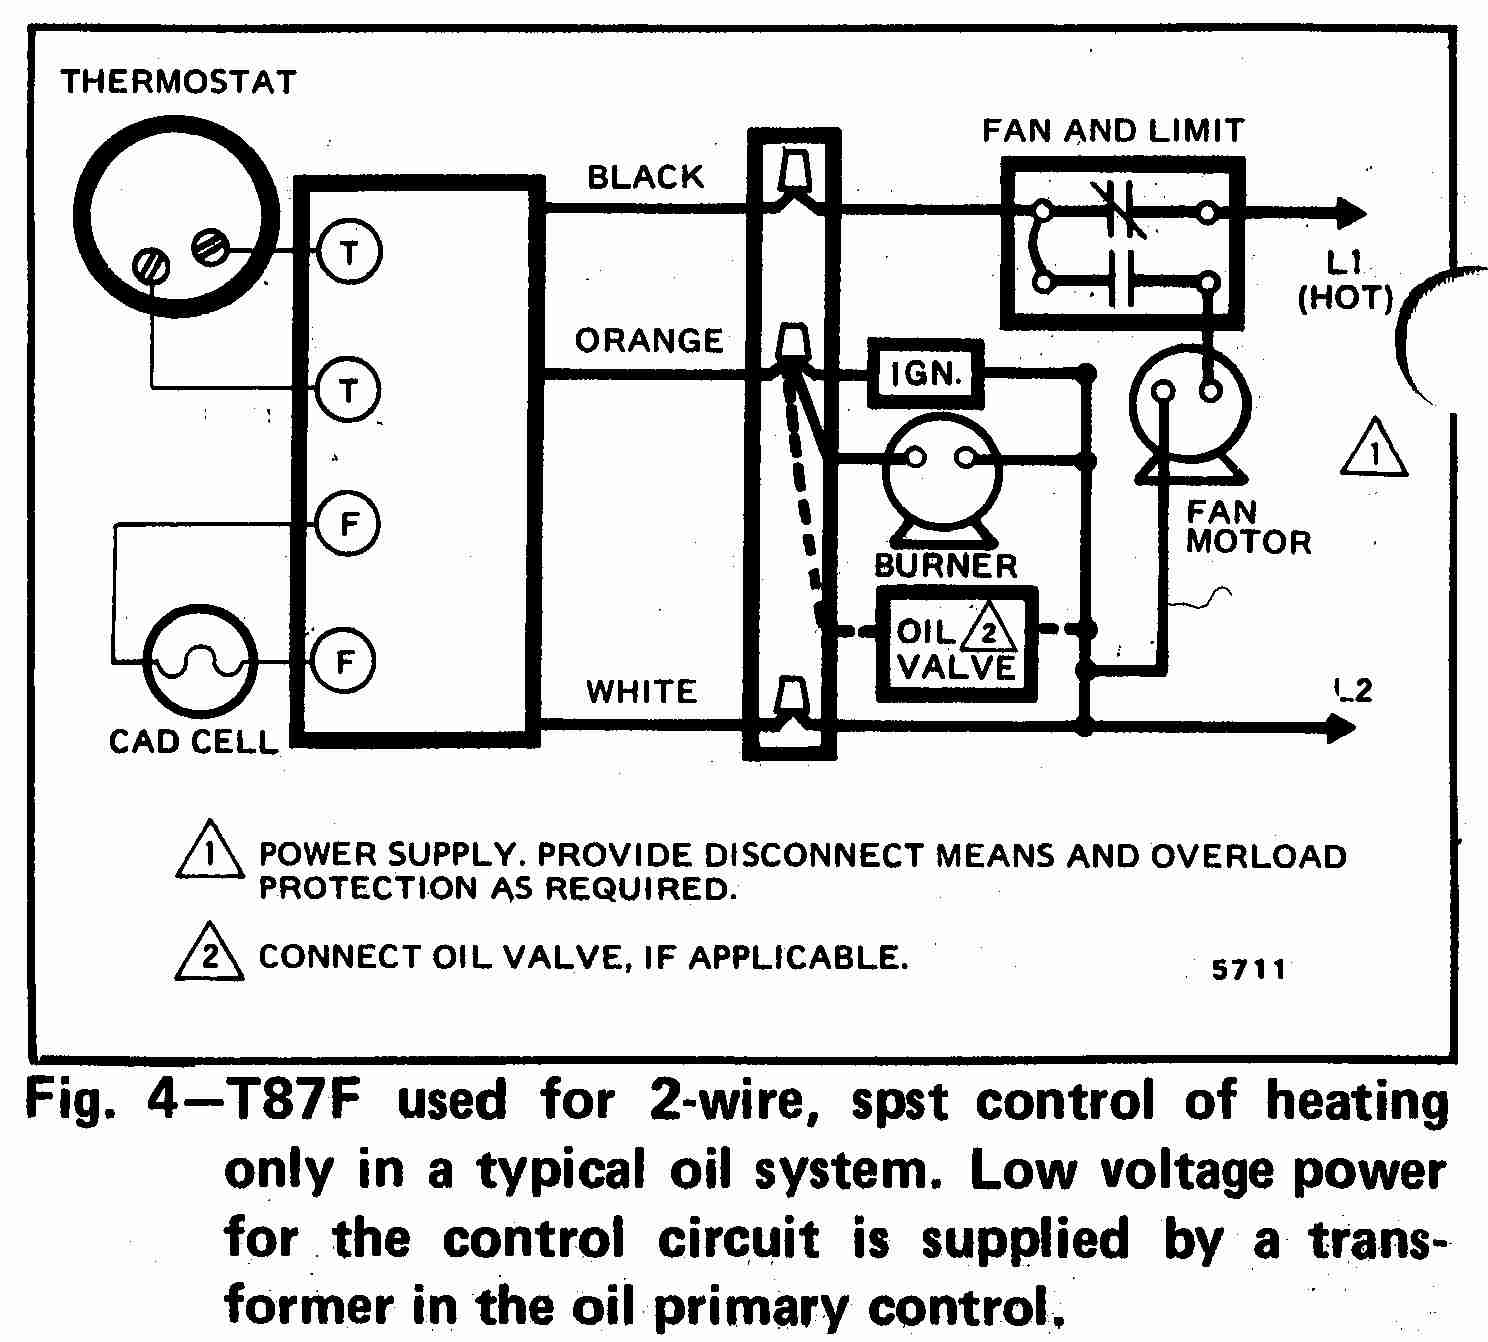 Thermostats Wire Diagrams Of 2 - 11.frv.capecoral-bootsvermietung.de